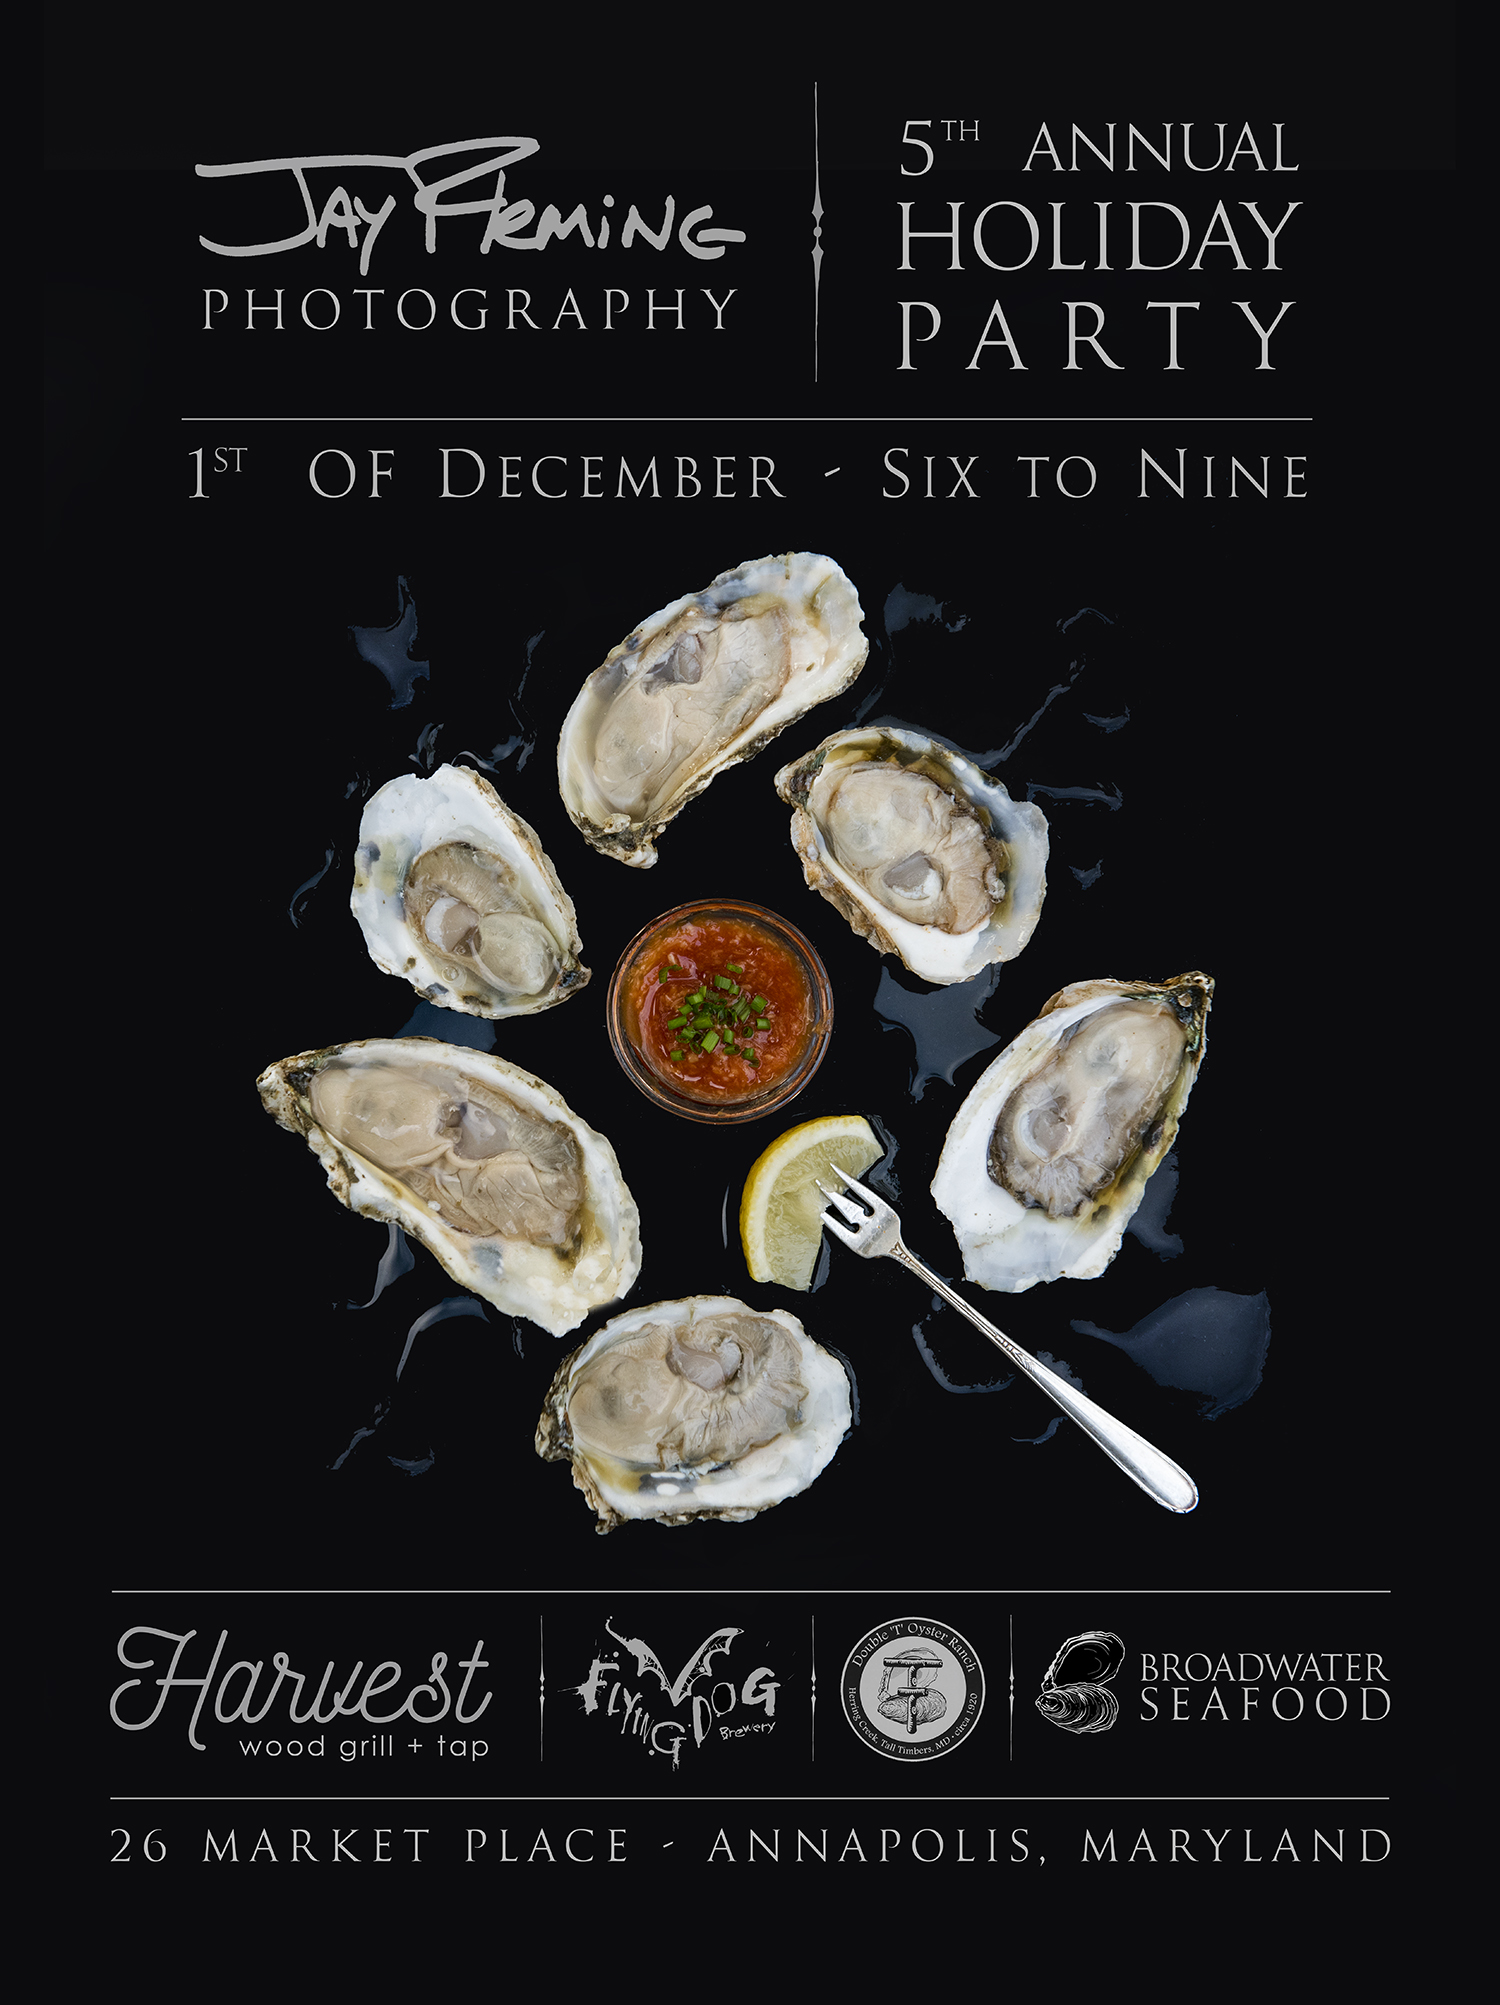 Holiday Party 2017 Event Poster .jpg